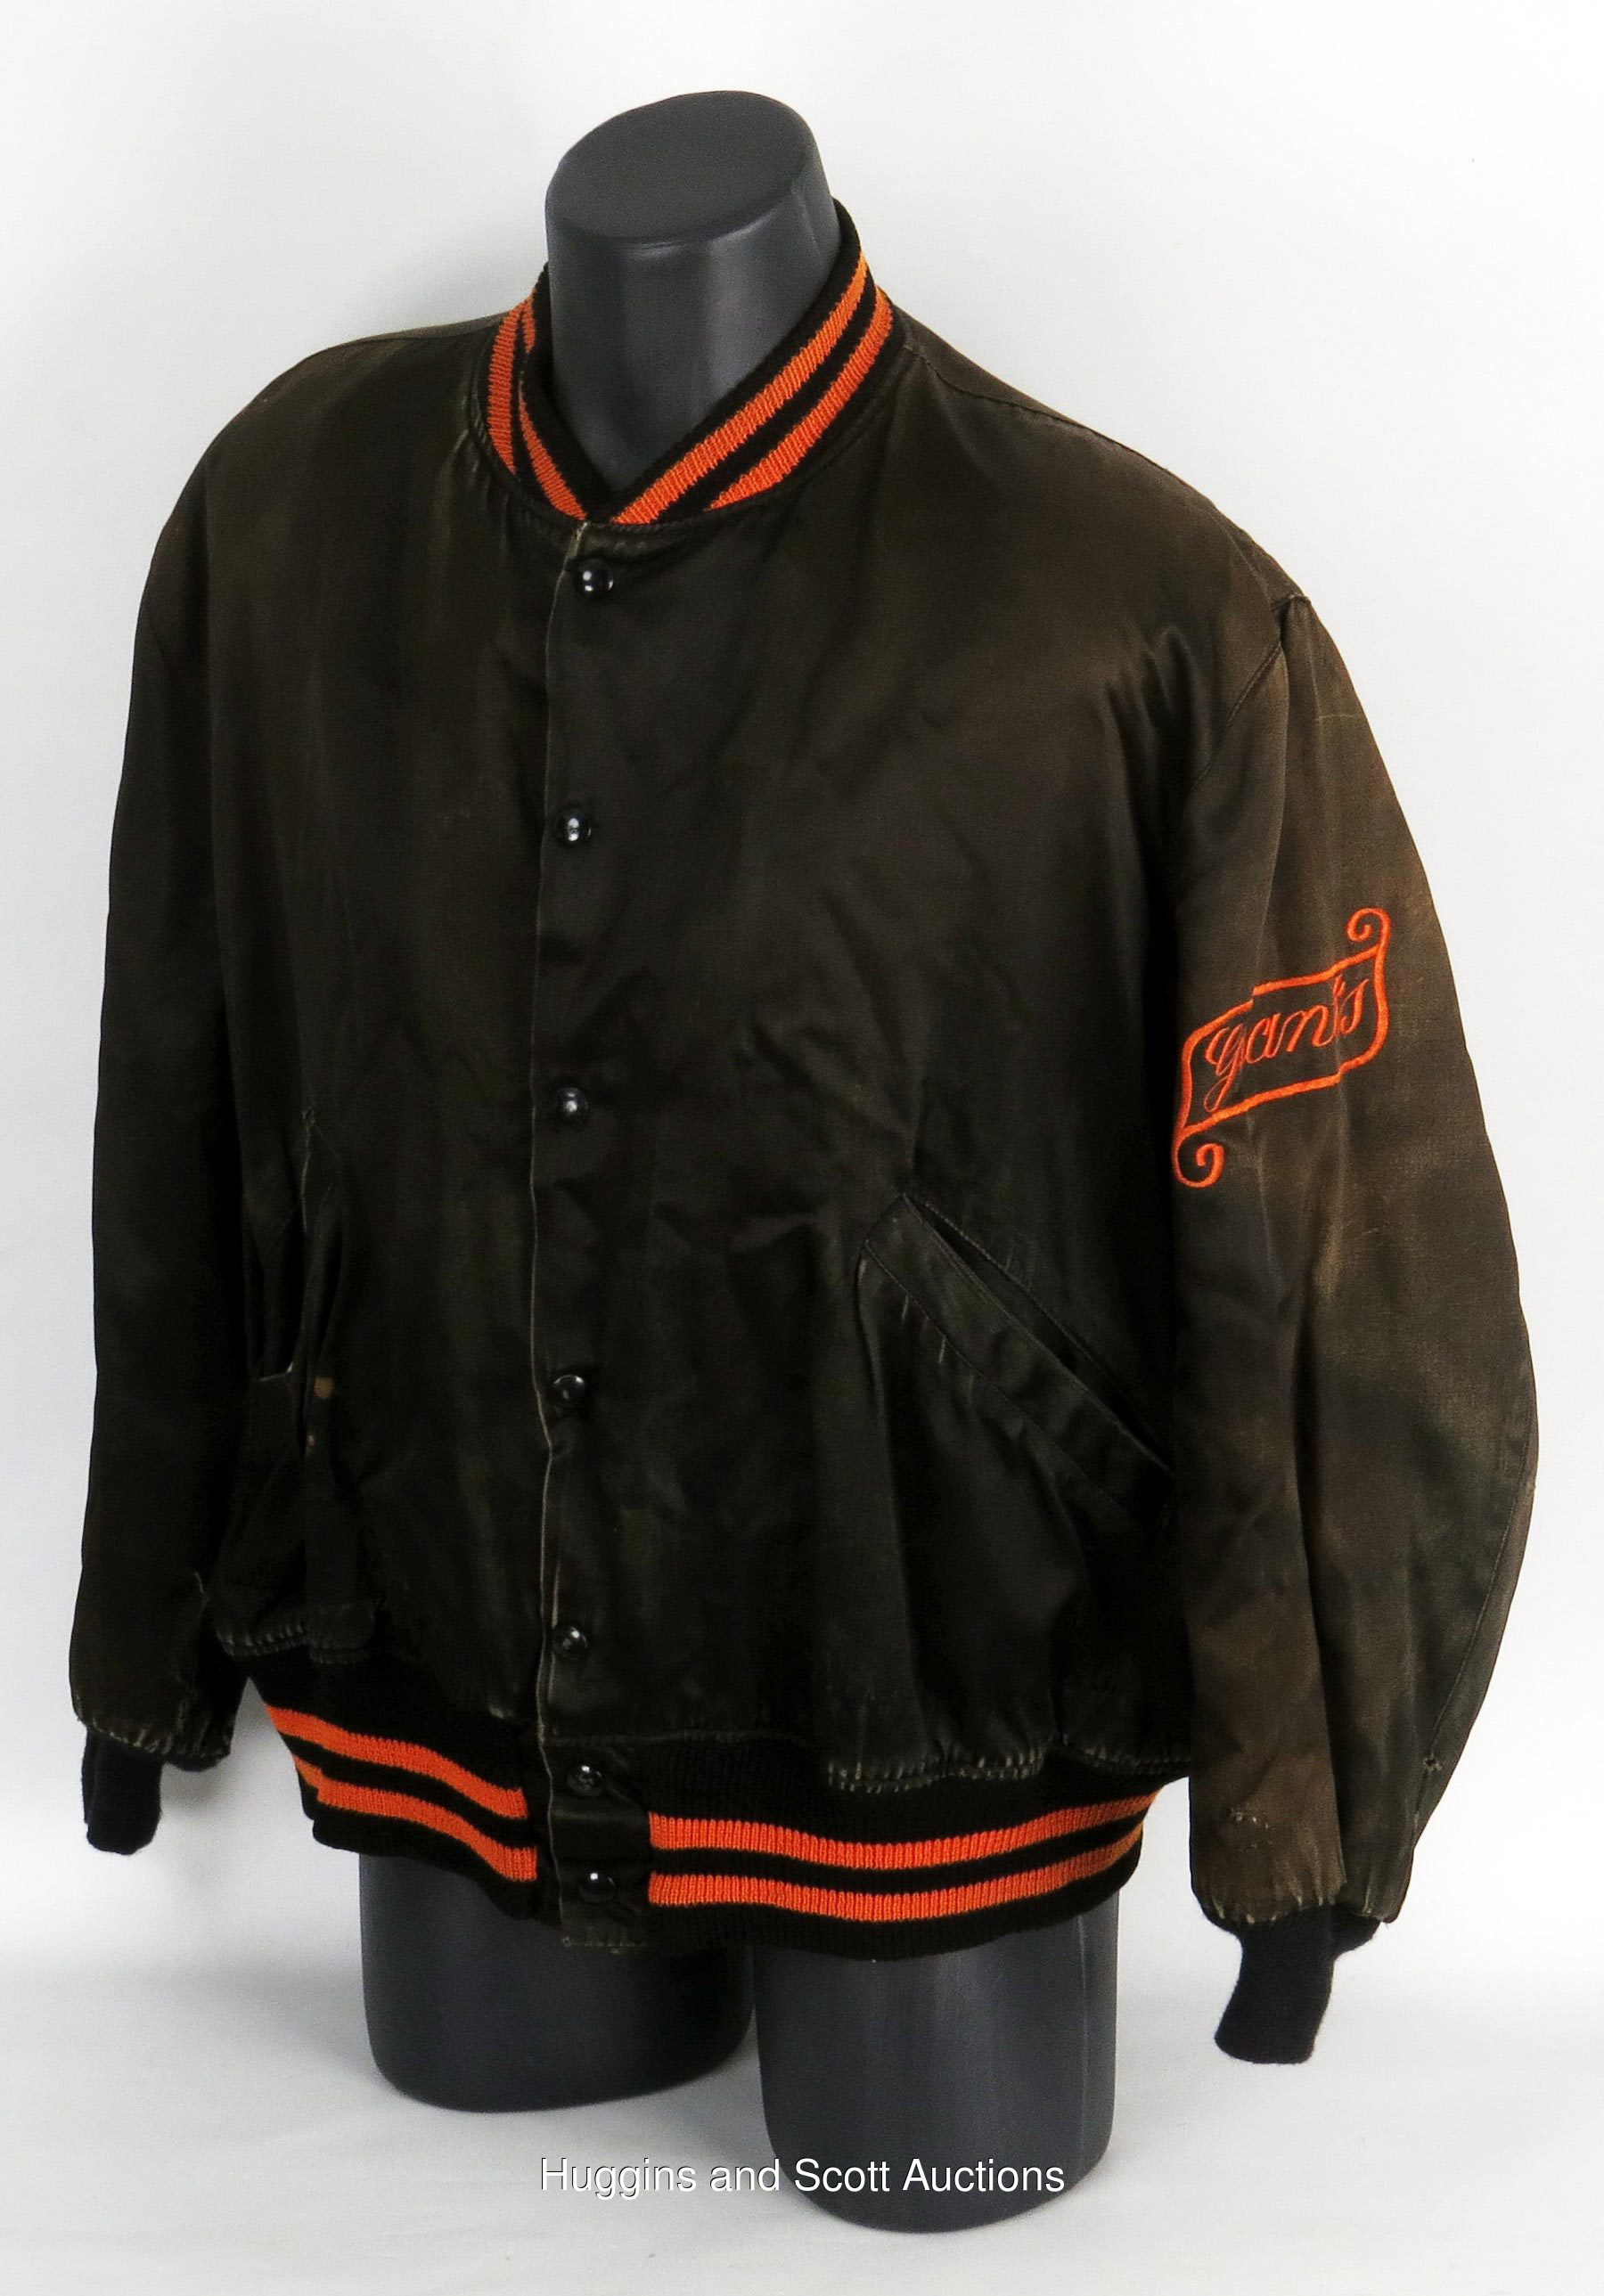 separation shoes 06ee9 6bb25 Early 1950s Tim McAuliffe Inc. New York Giants Warm-Up Jackets